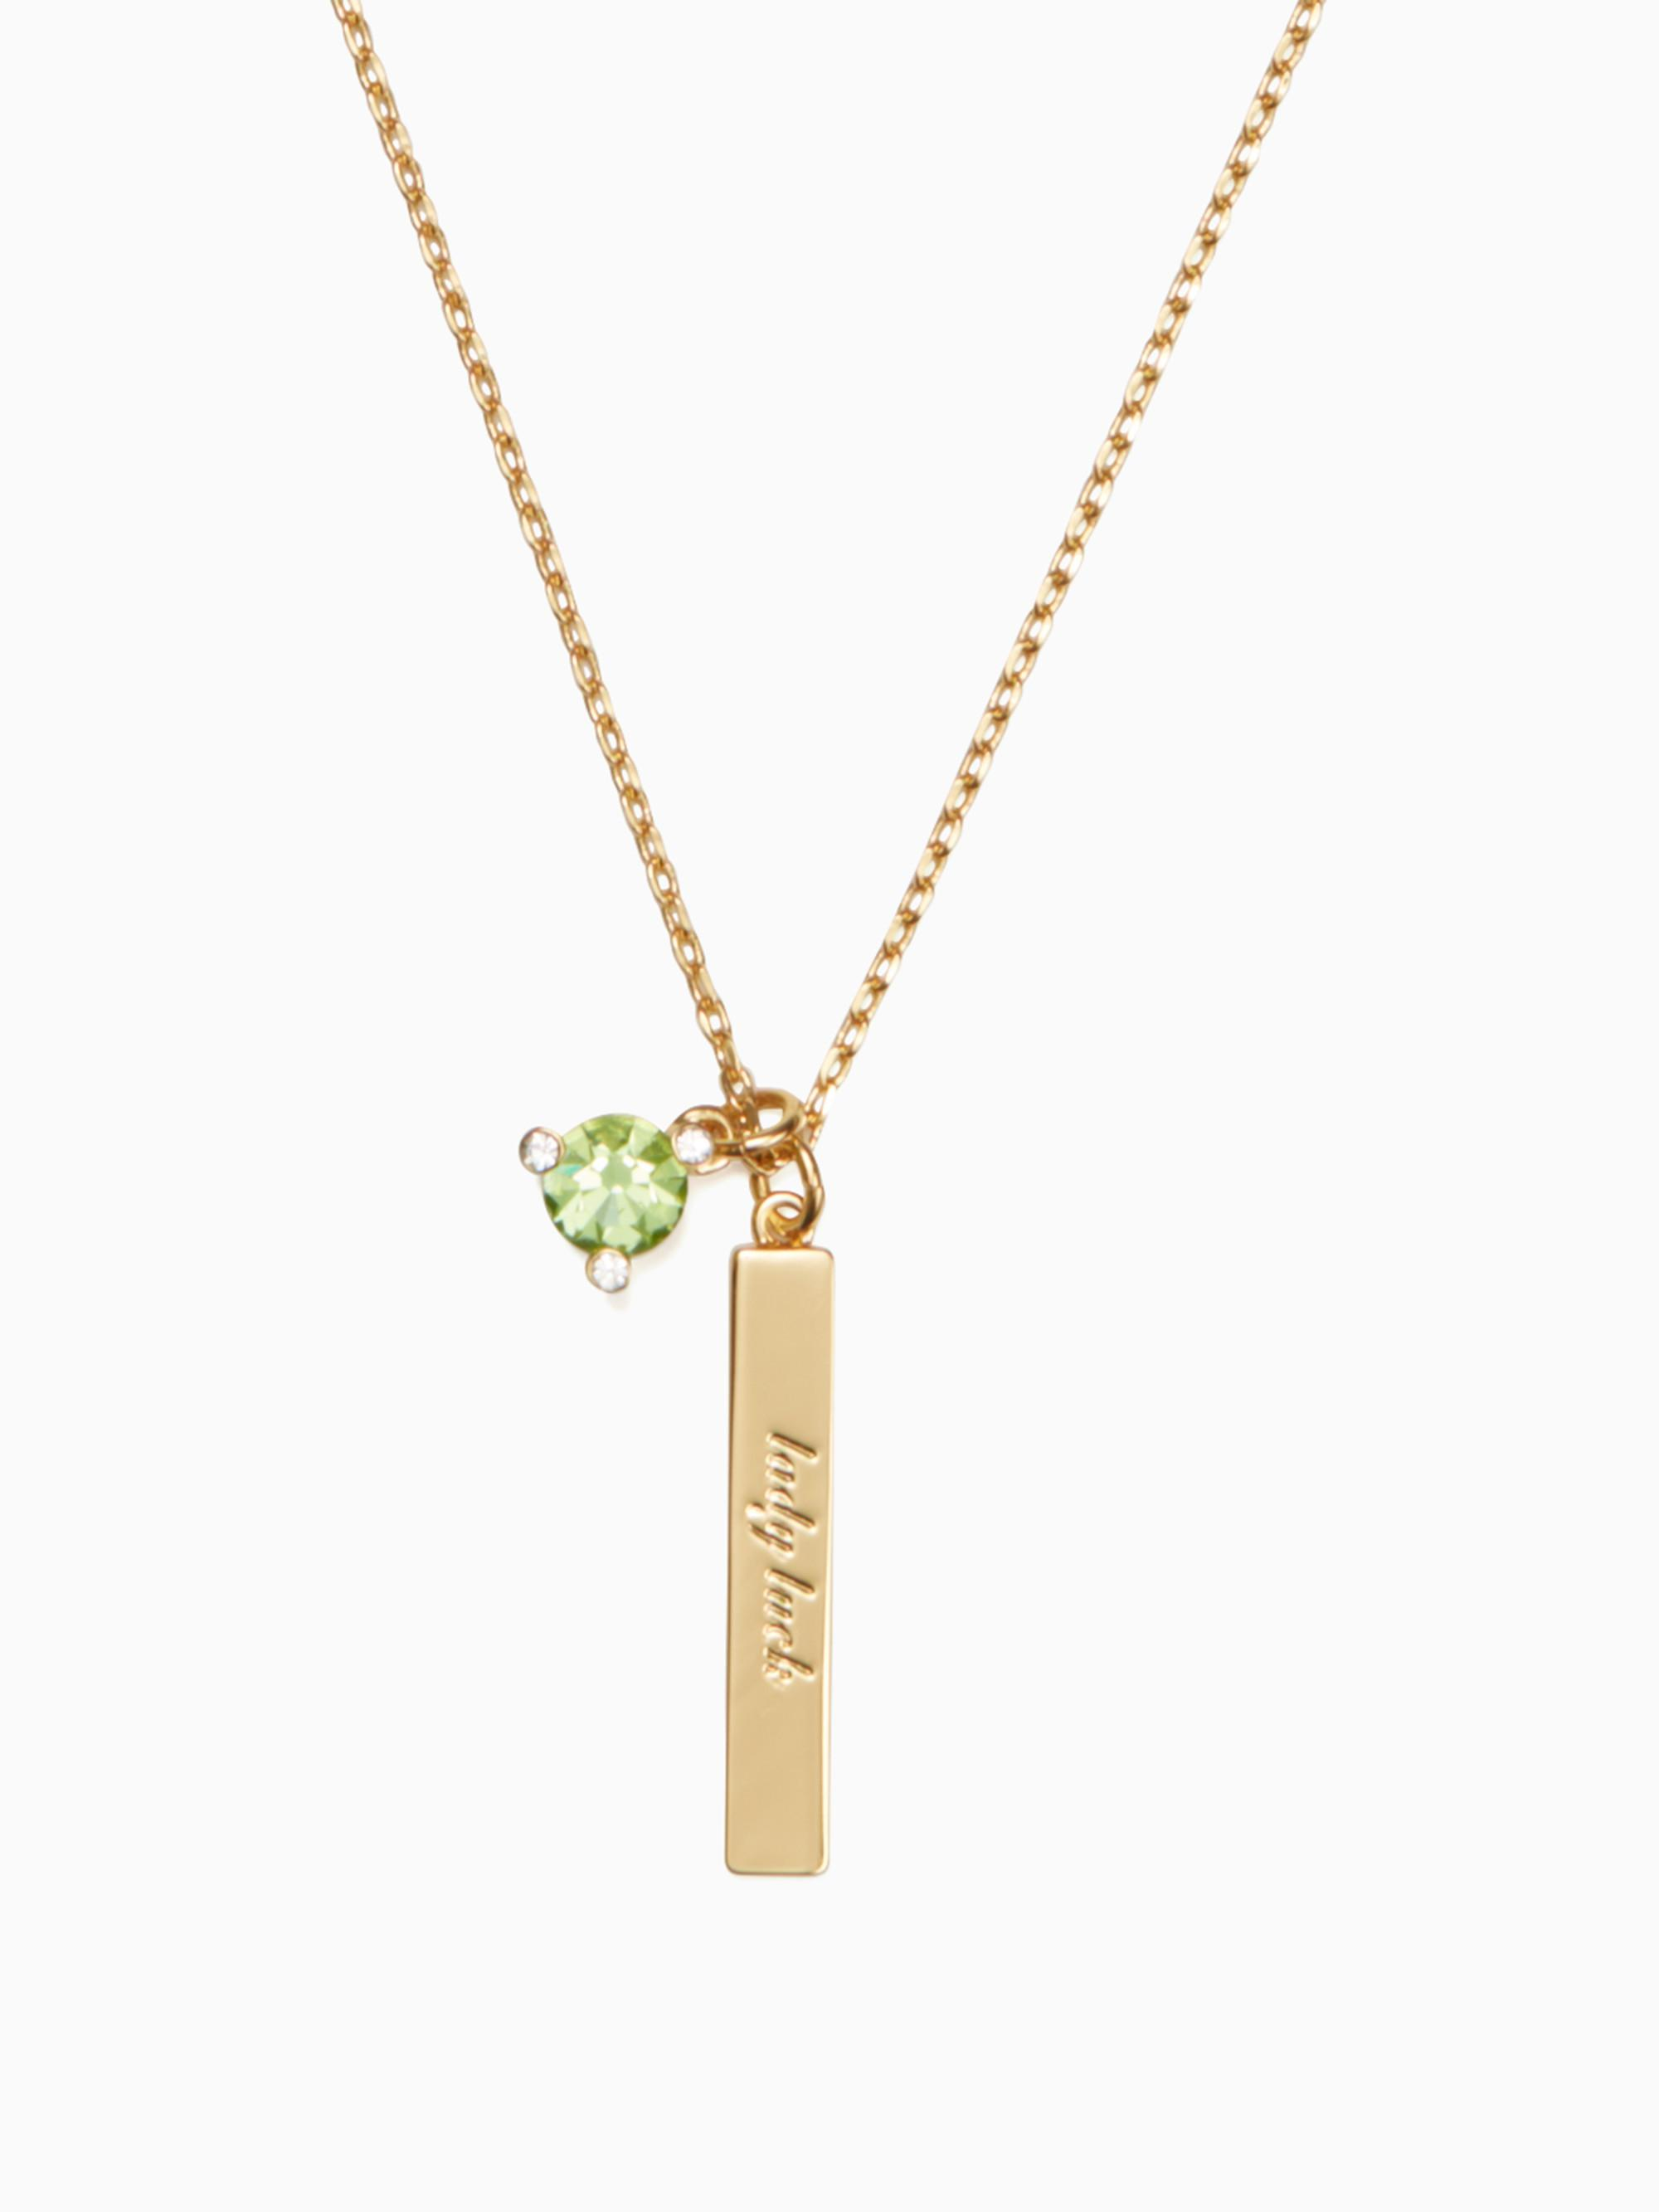 london necklace august products birthstone mixed personalised rachel jackson aqemss